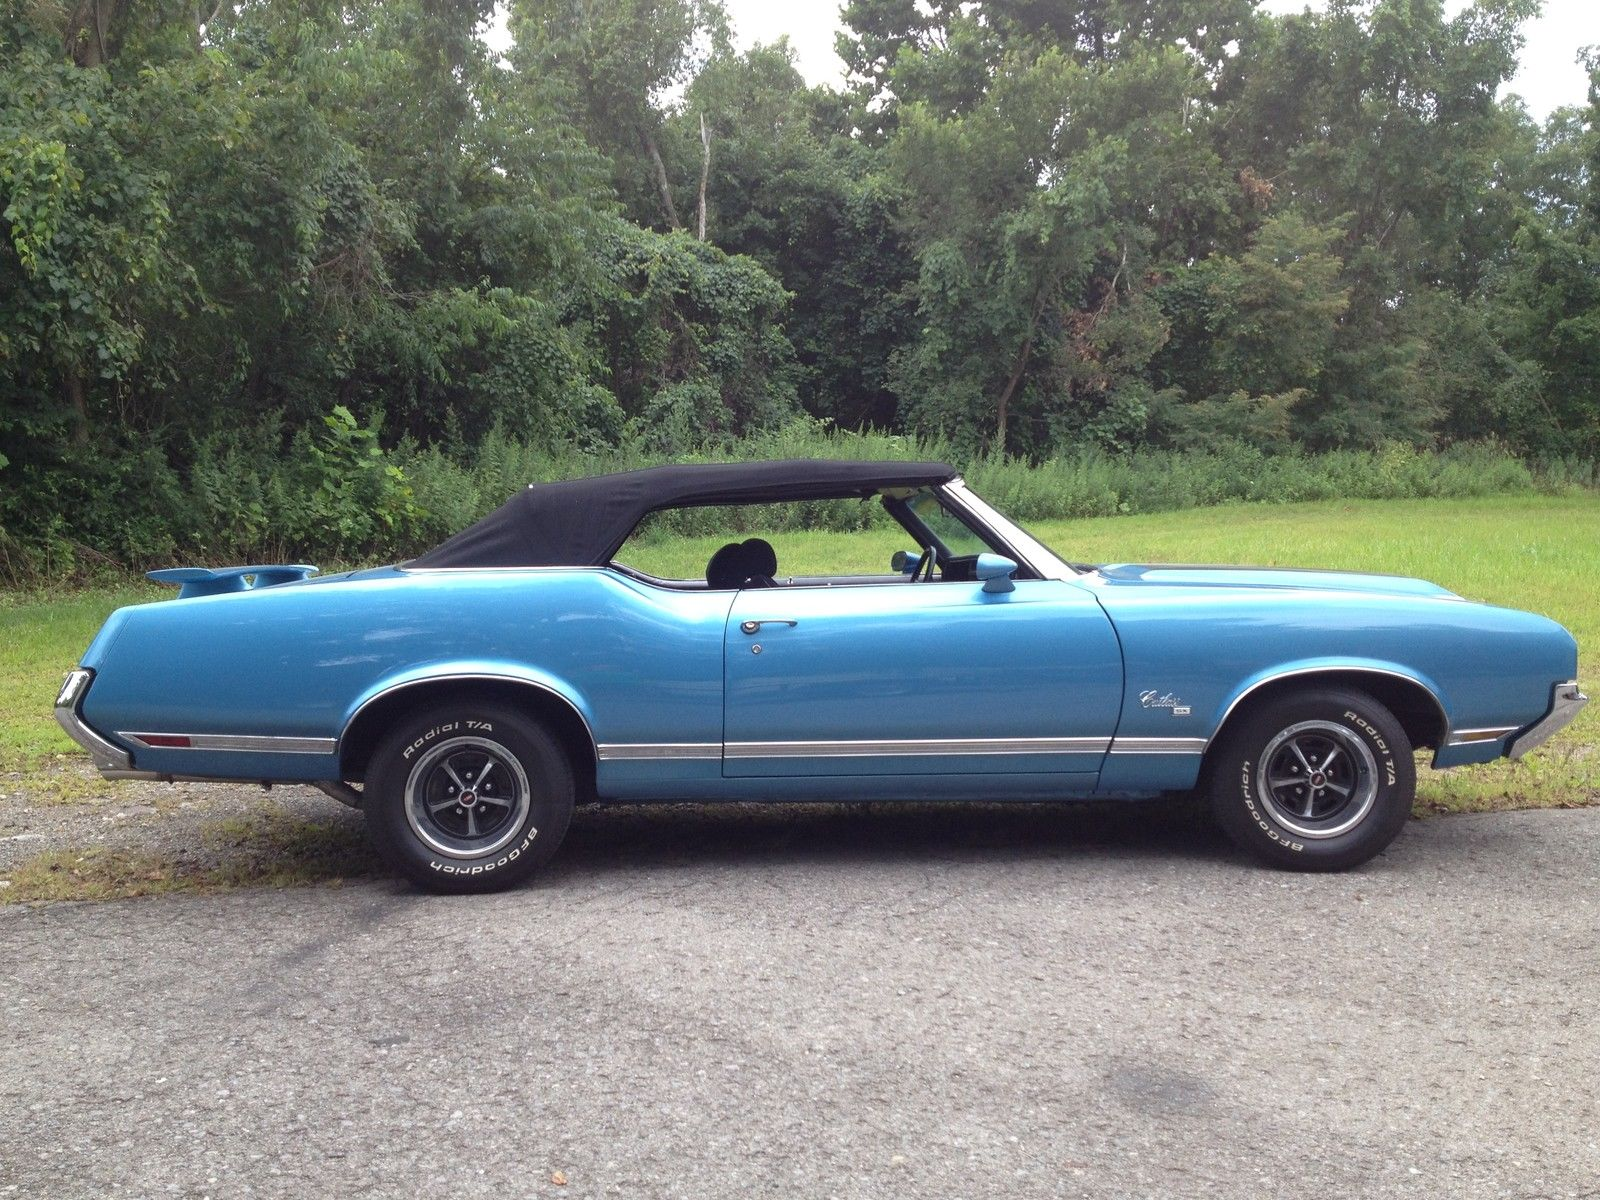 1971 Oldsmobile Cutlass SX - Muscle Car